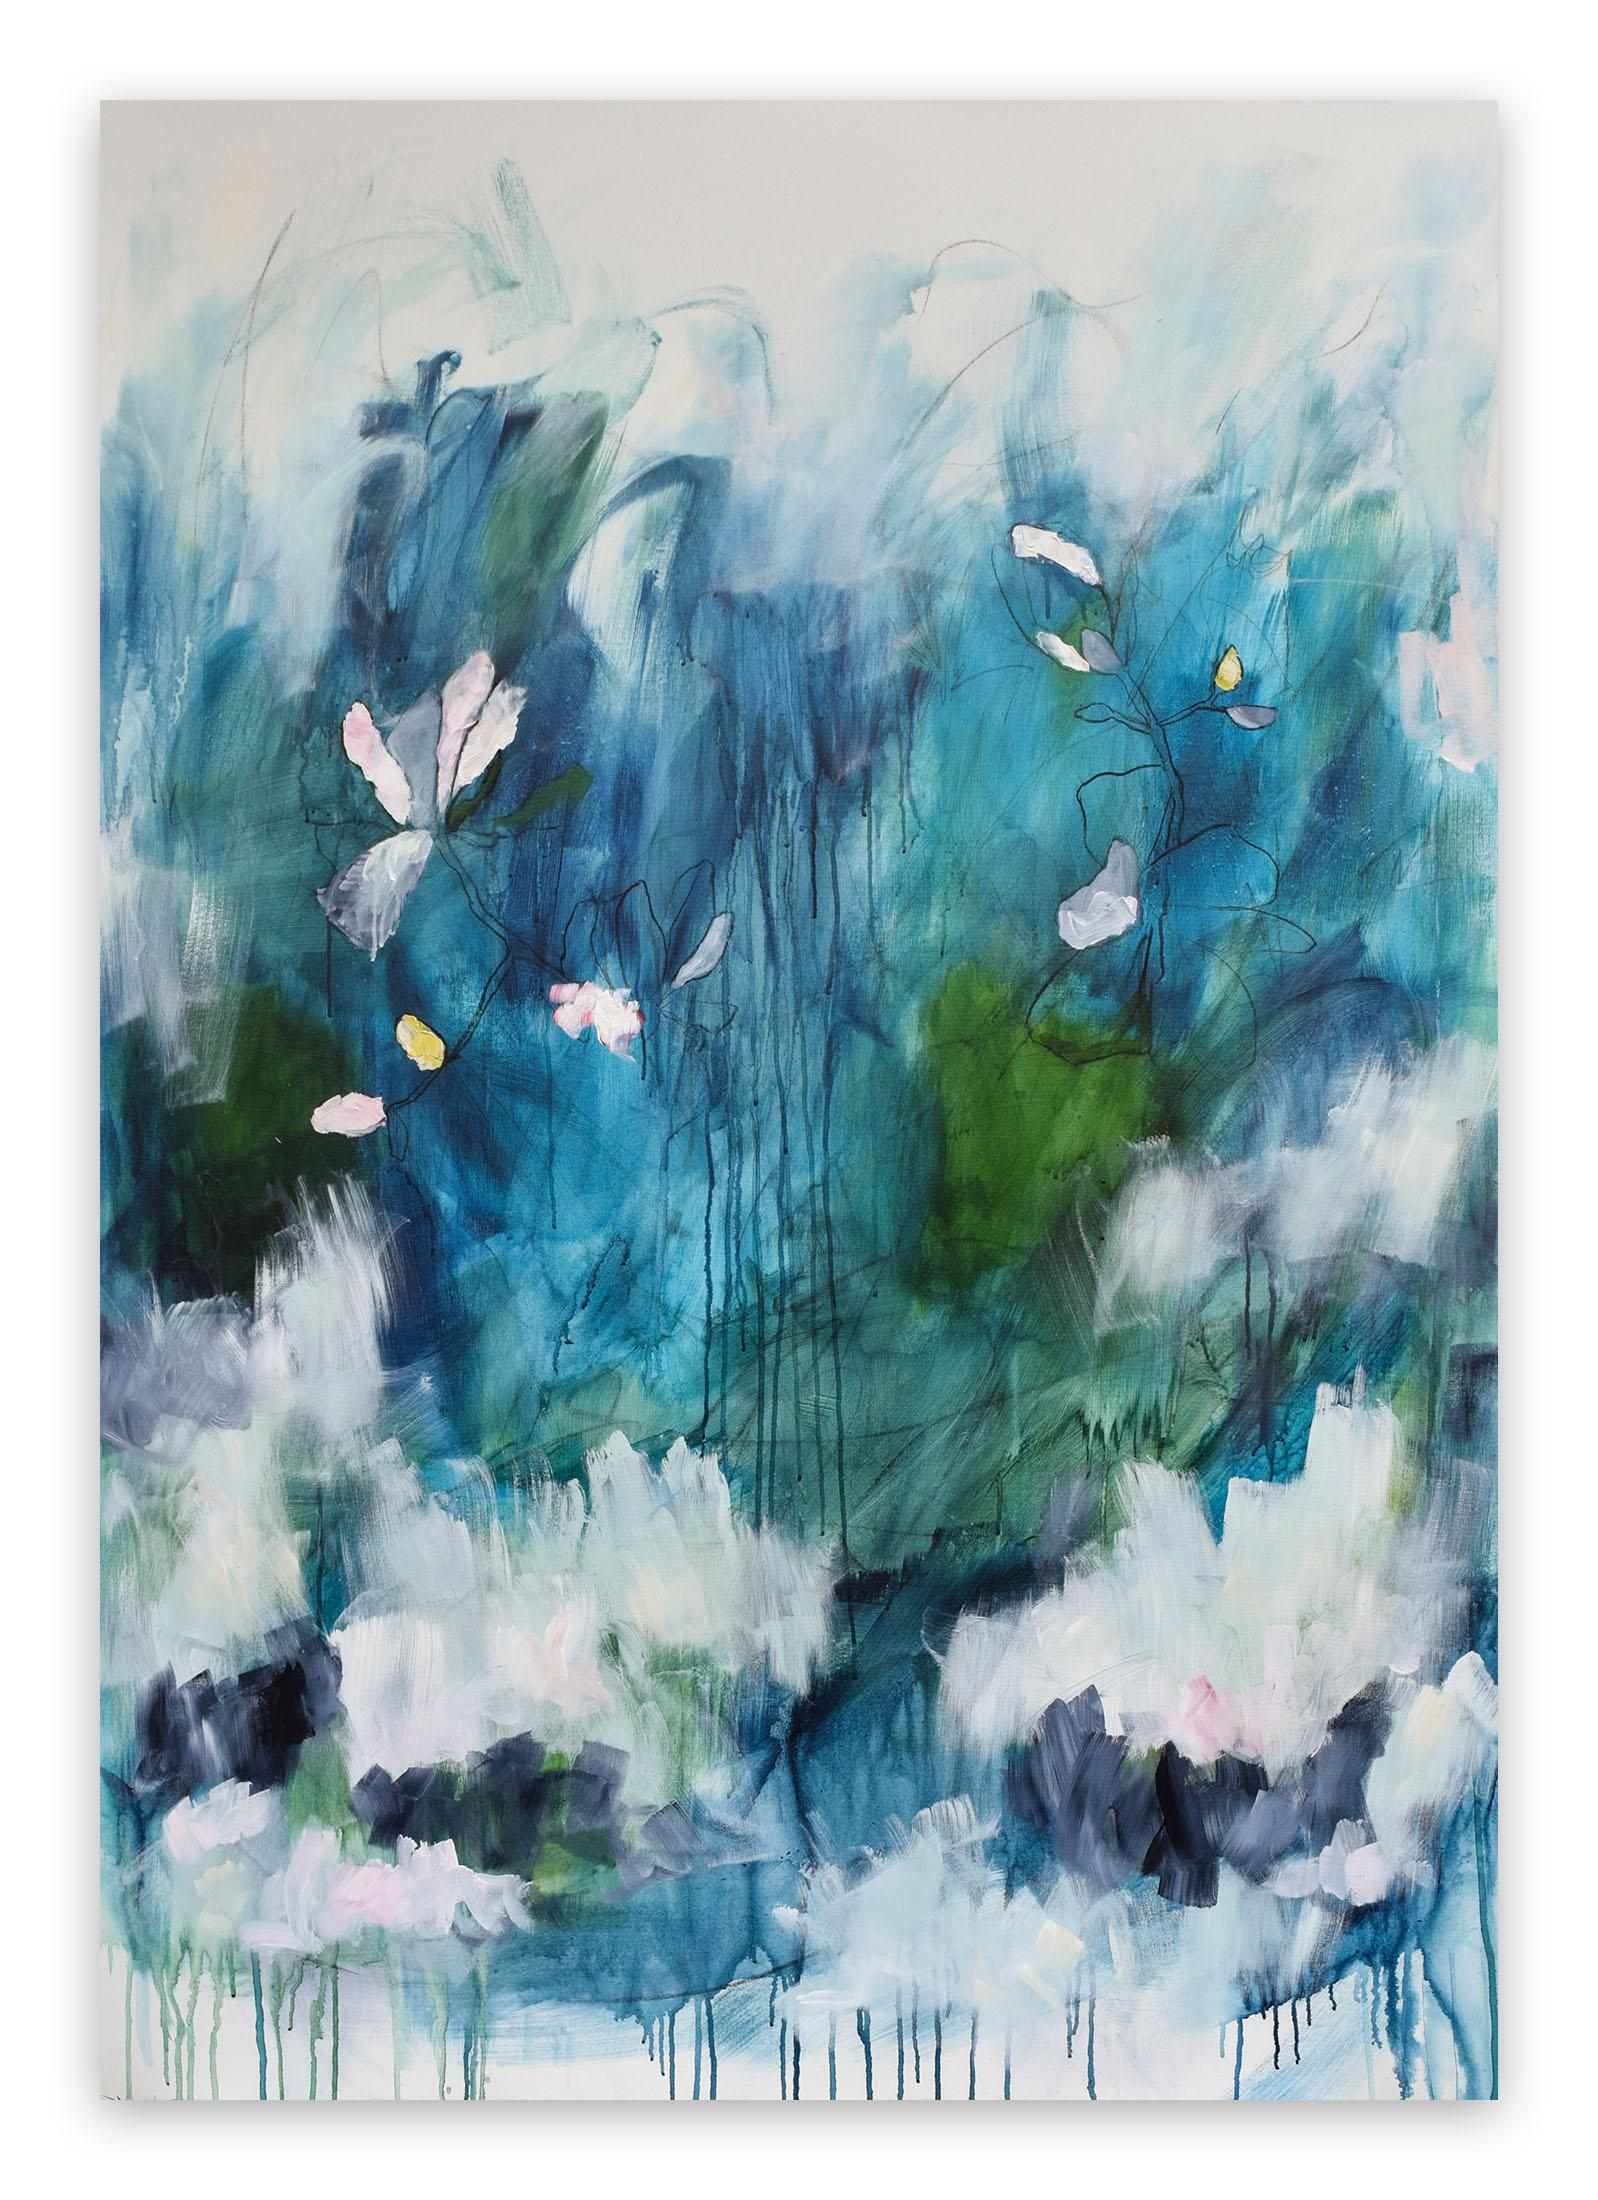 Pour Toujours - Forever (Abstract painting)